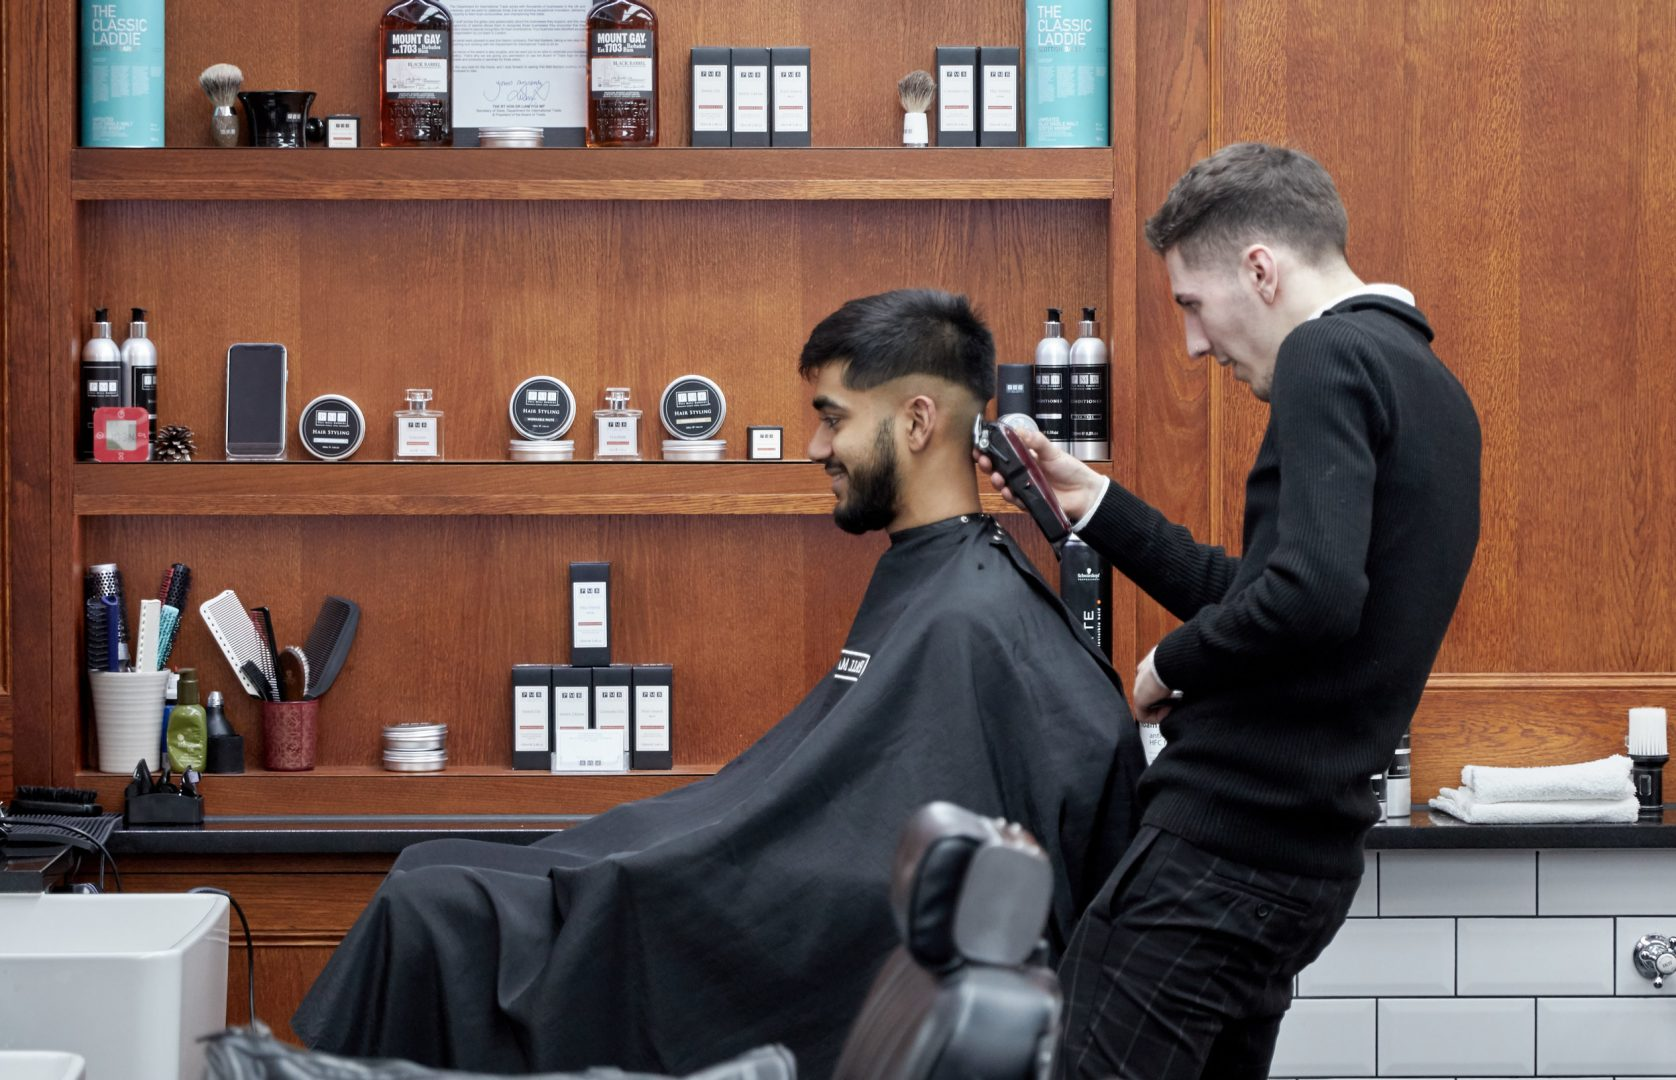 Best Barbershop Kings Cross